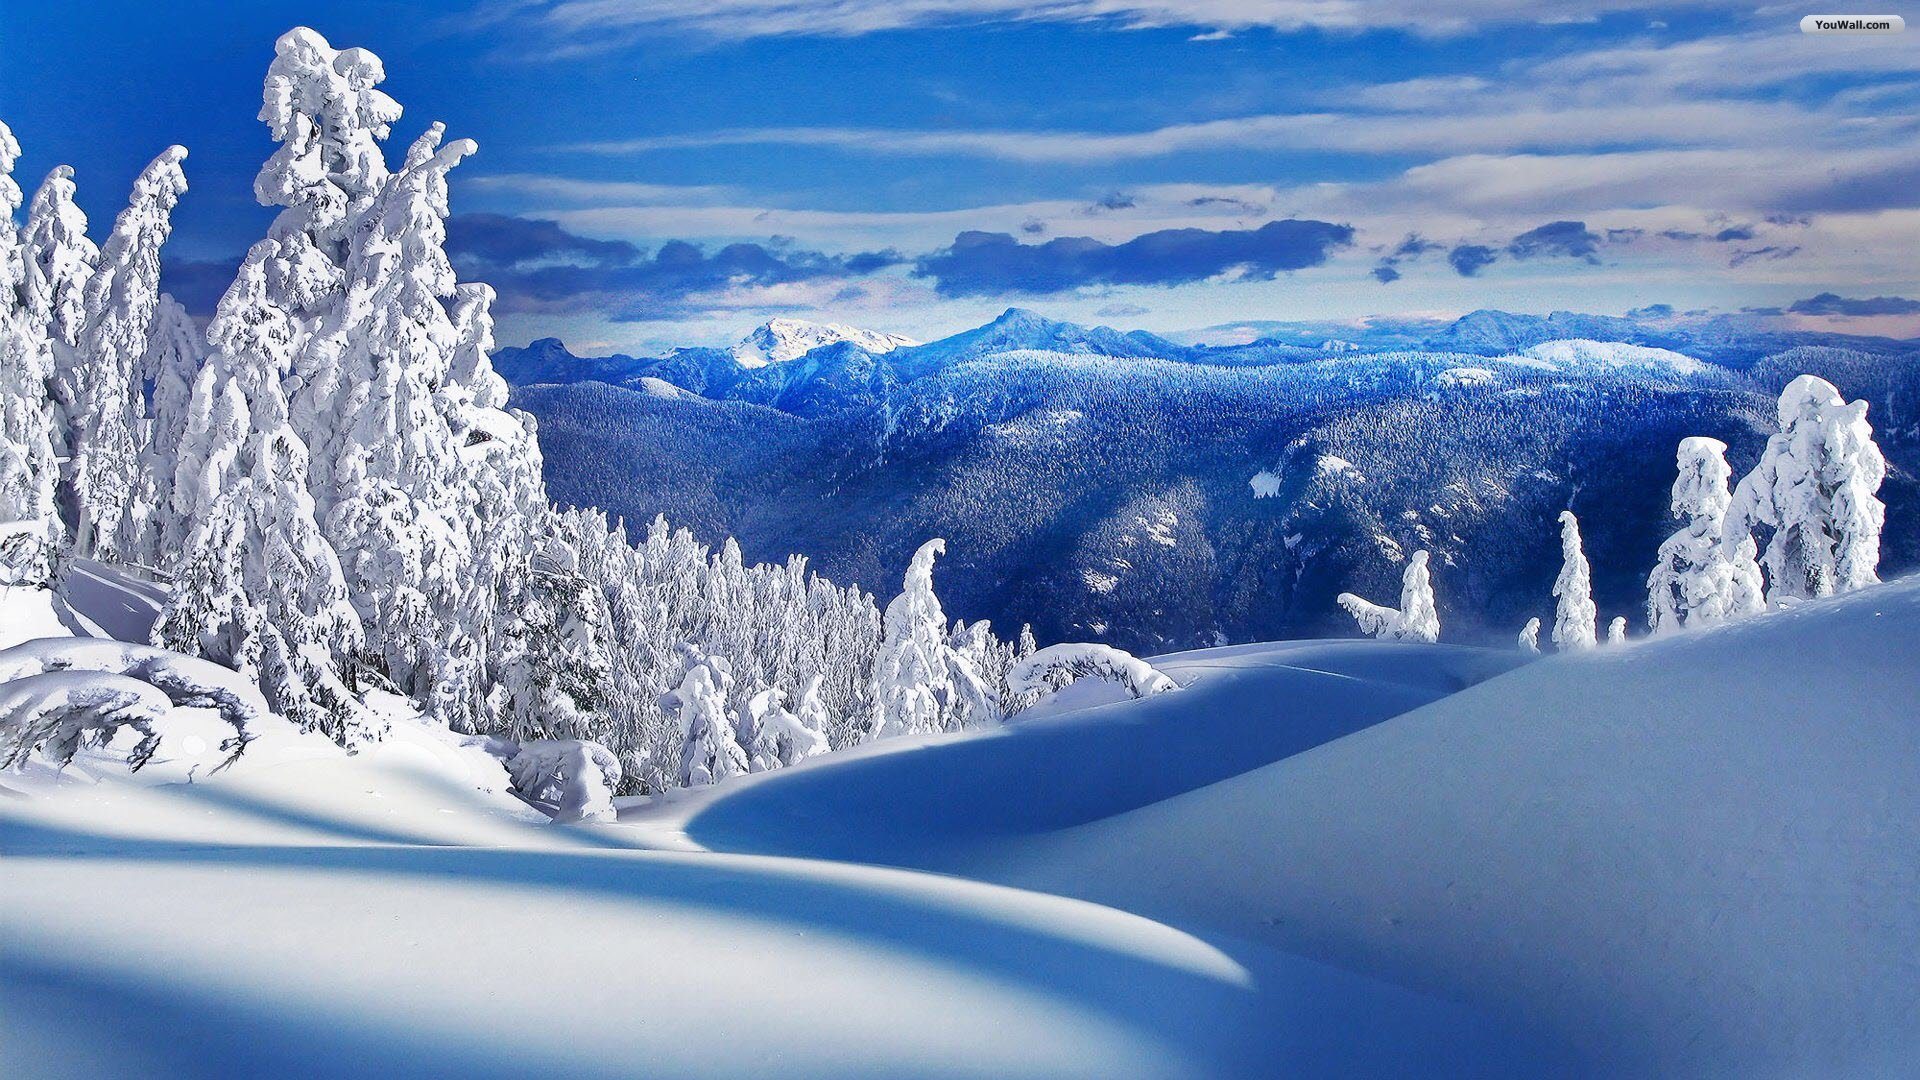 Winter landscape wallpaper full hd pixelstalk net - Free landscape backgrounds ...